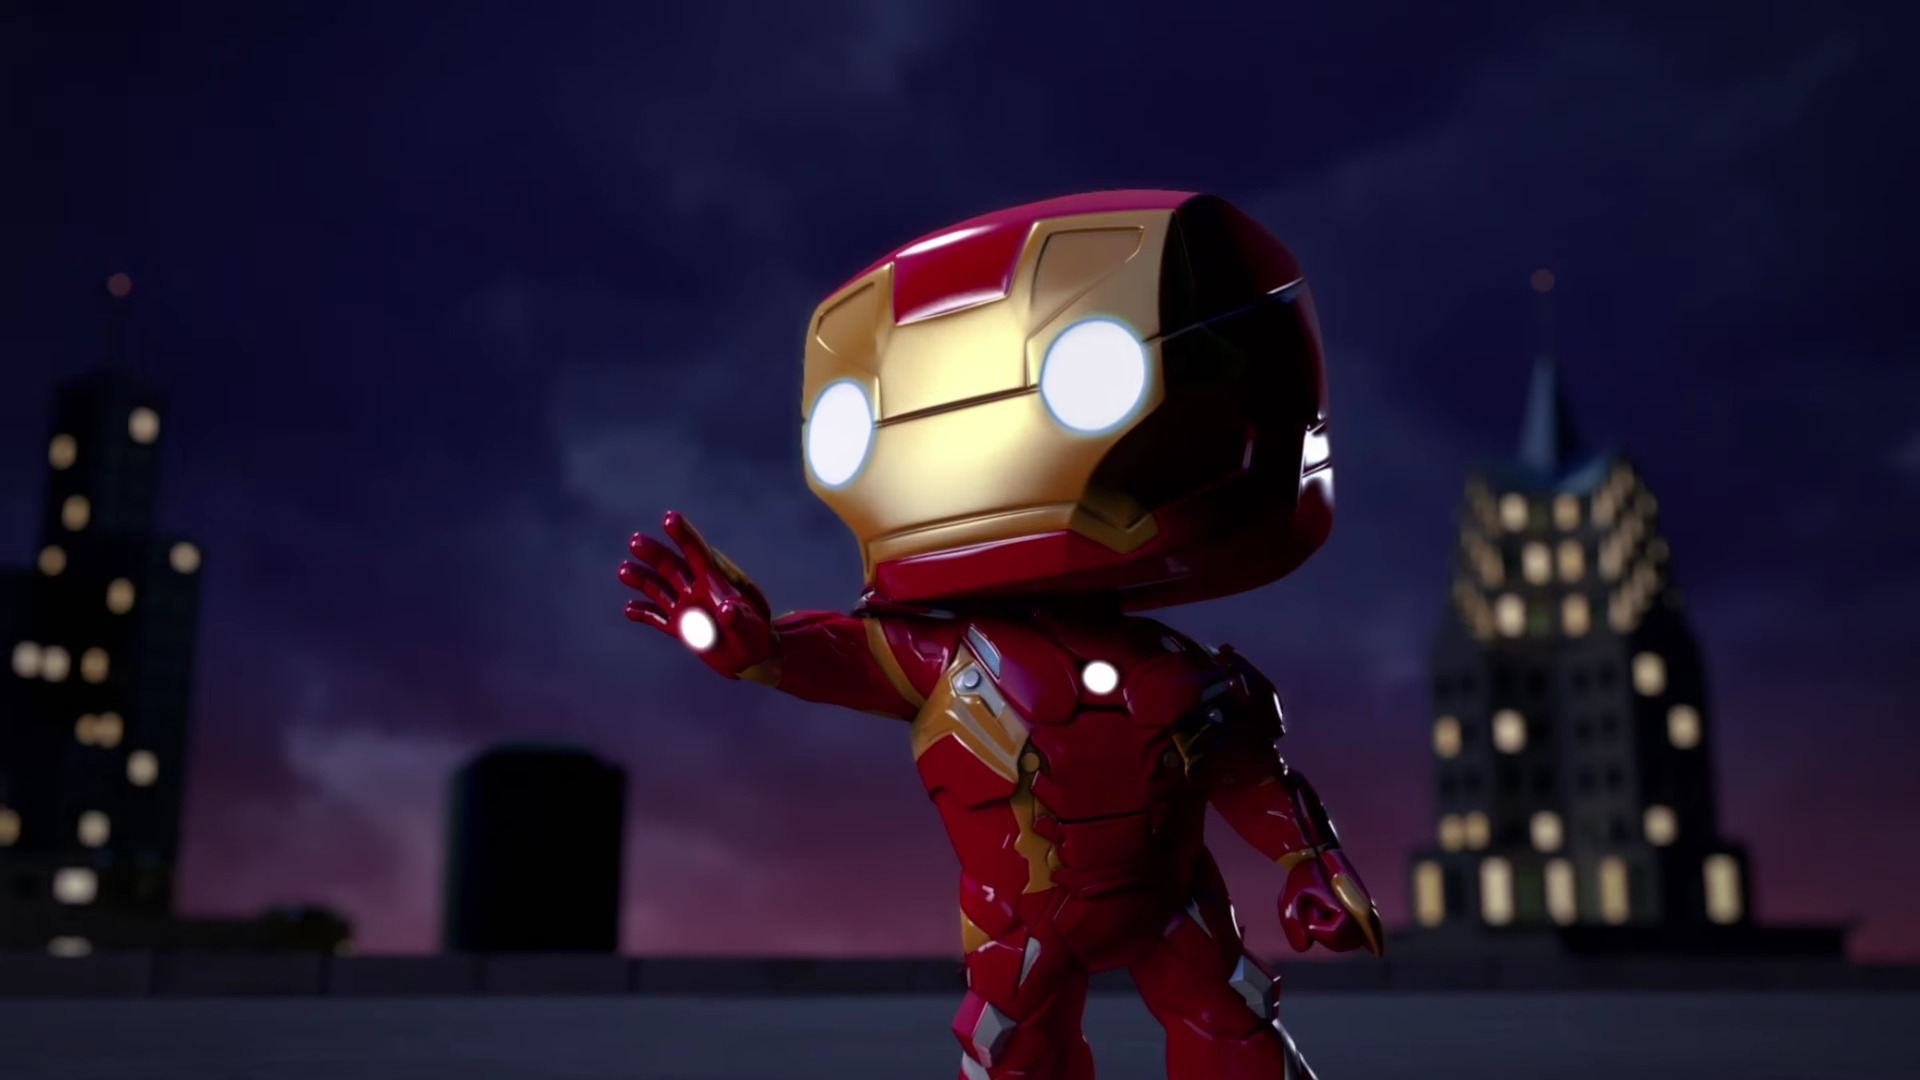 Iron man spellbound animated movie hd superheroes 4k - Iron man wallpaper anime ...